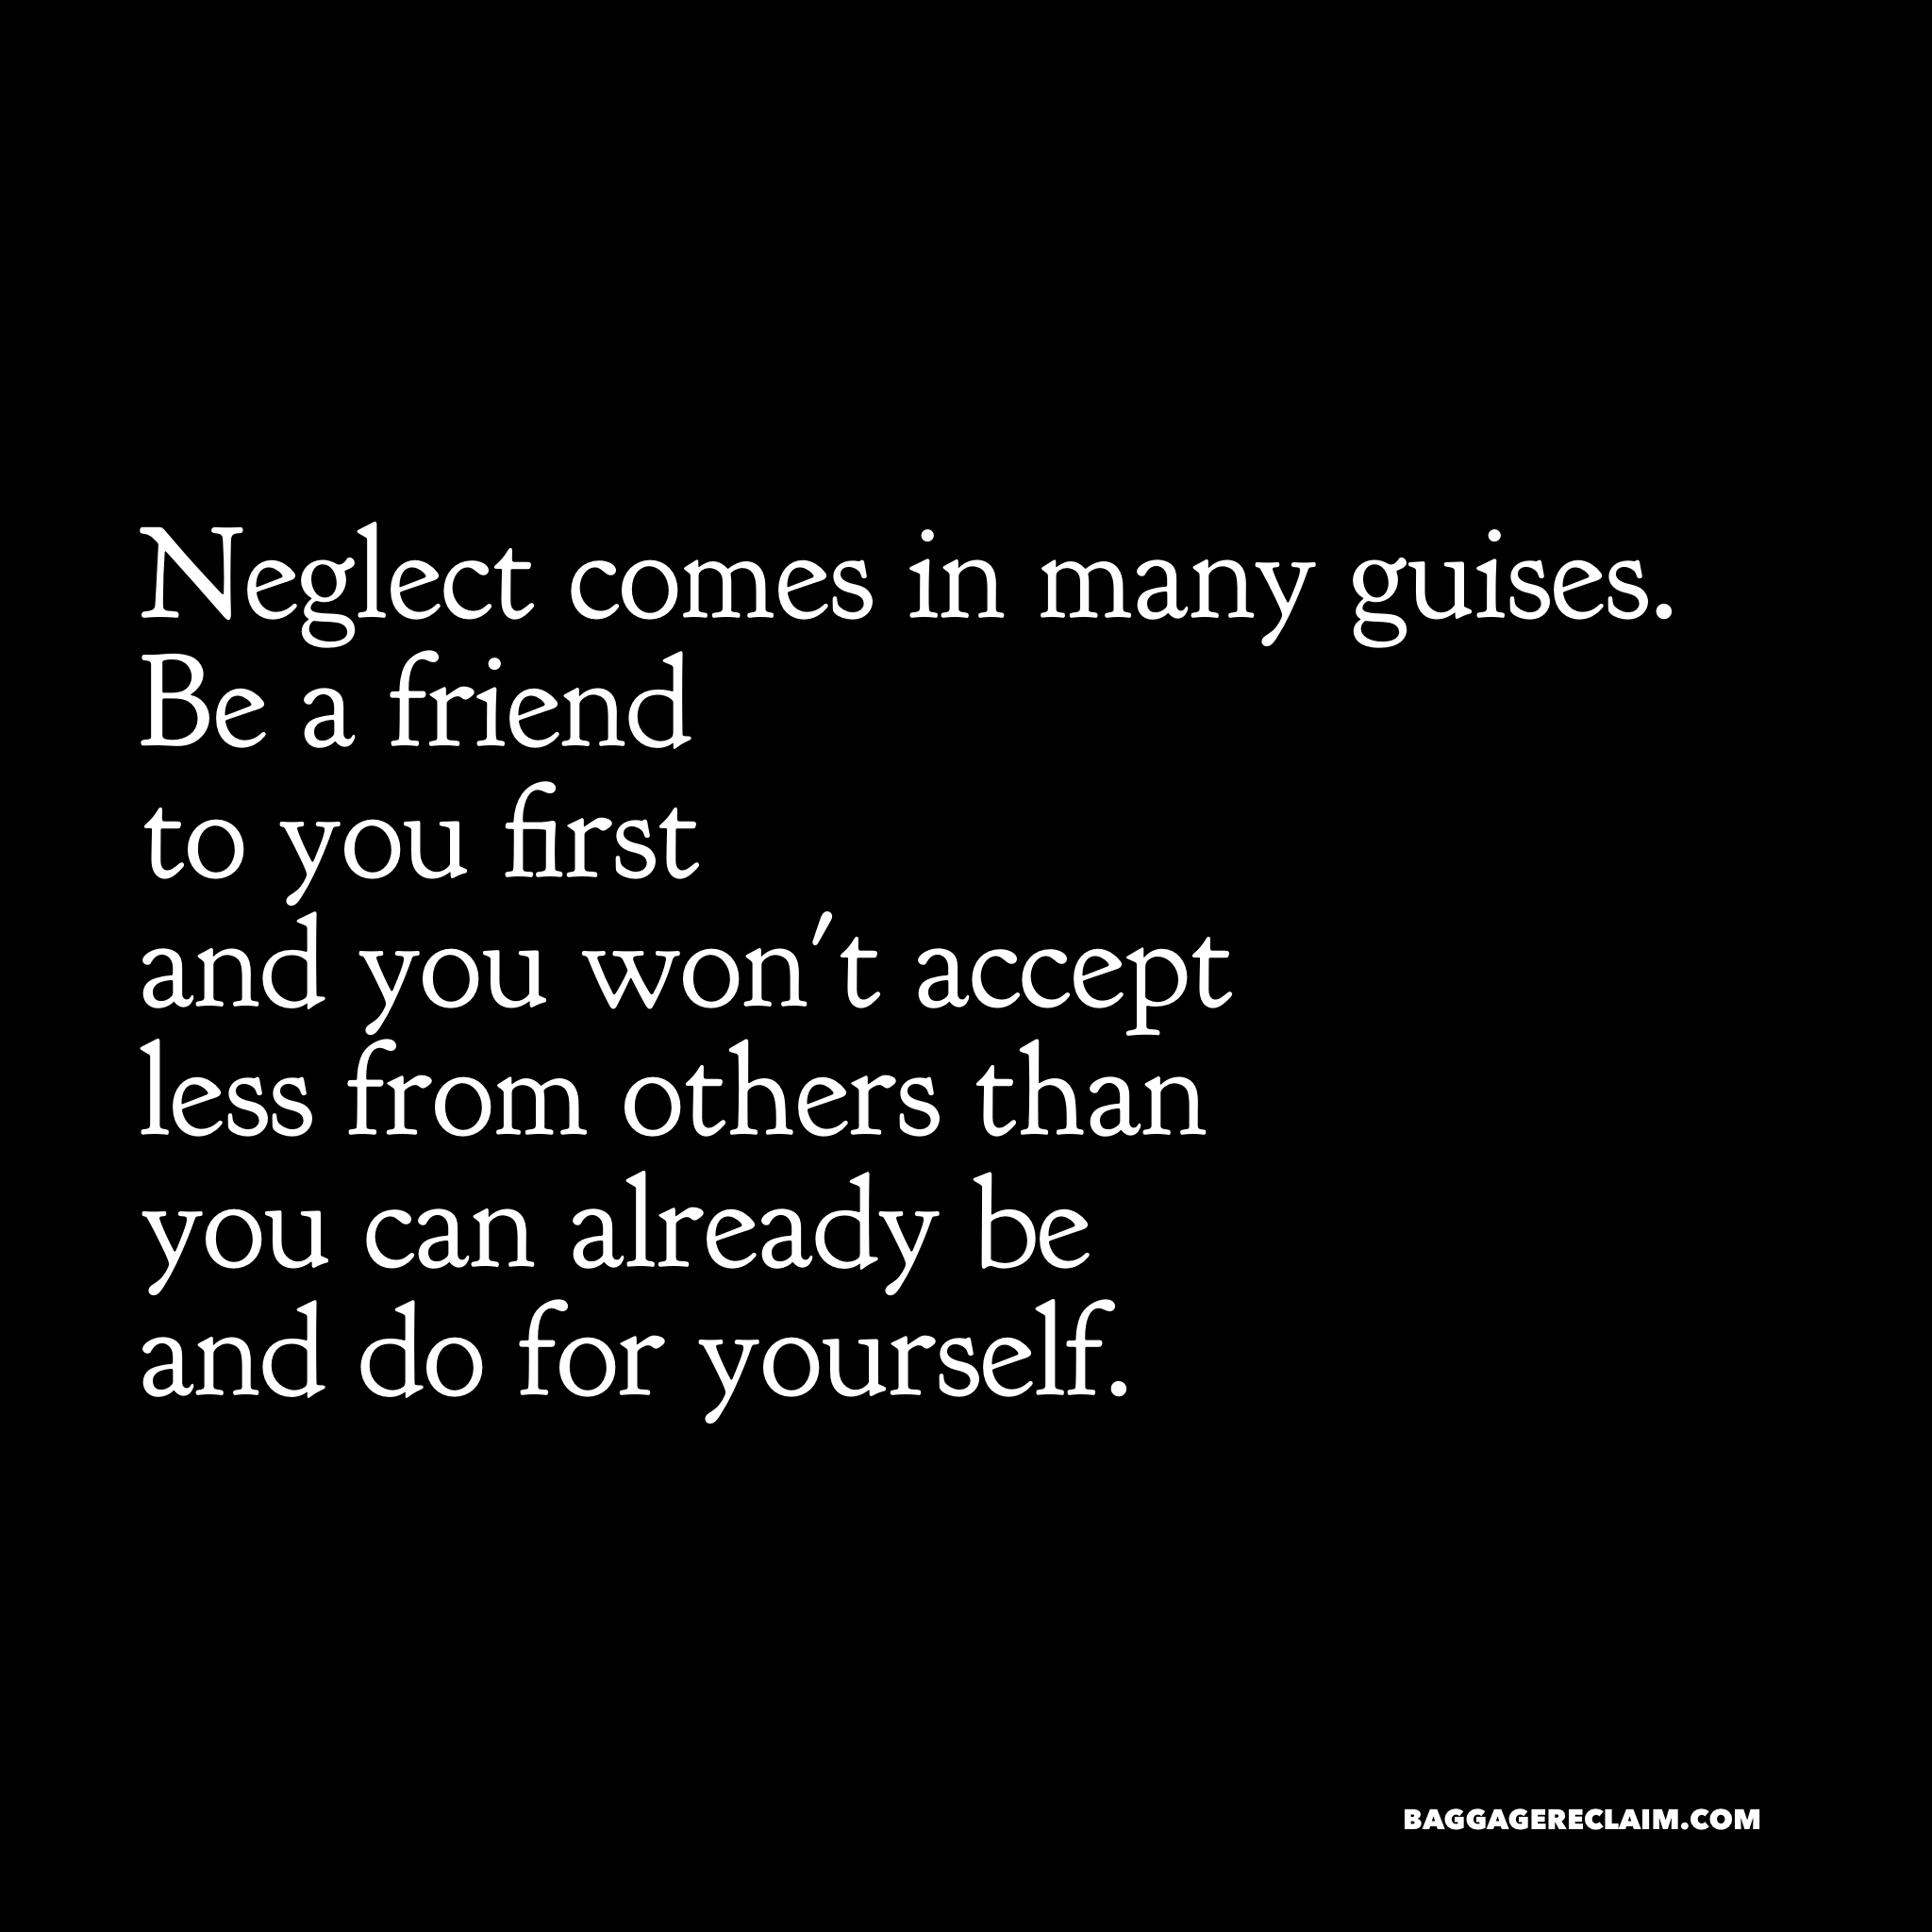 Neglect comes in many guises. Be a friend to you first and you won't accept less from others than you can already be and do for yourself.